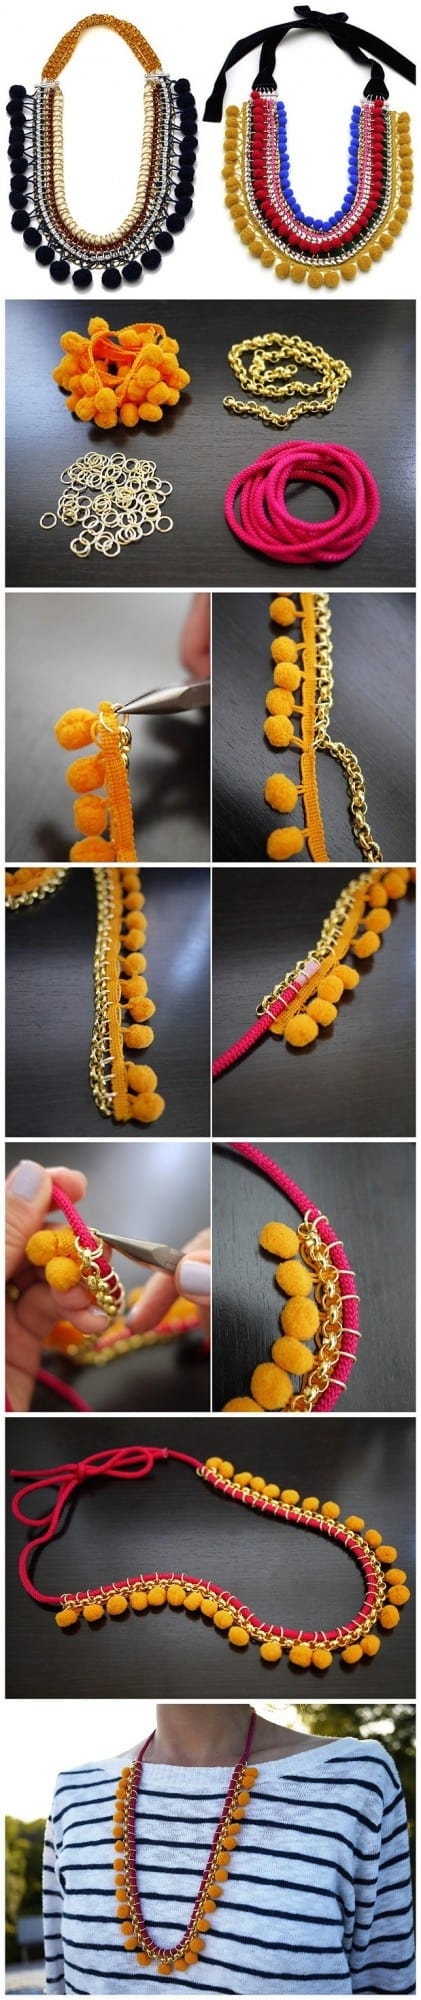 Fantastic DIY Necklace Projects That Everyone Can Make